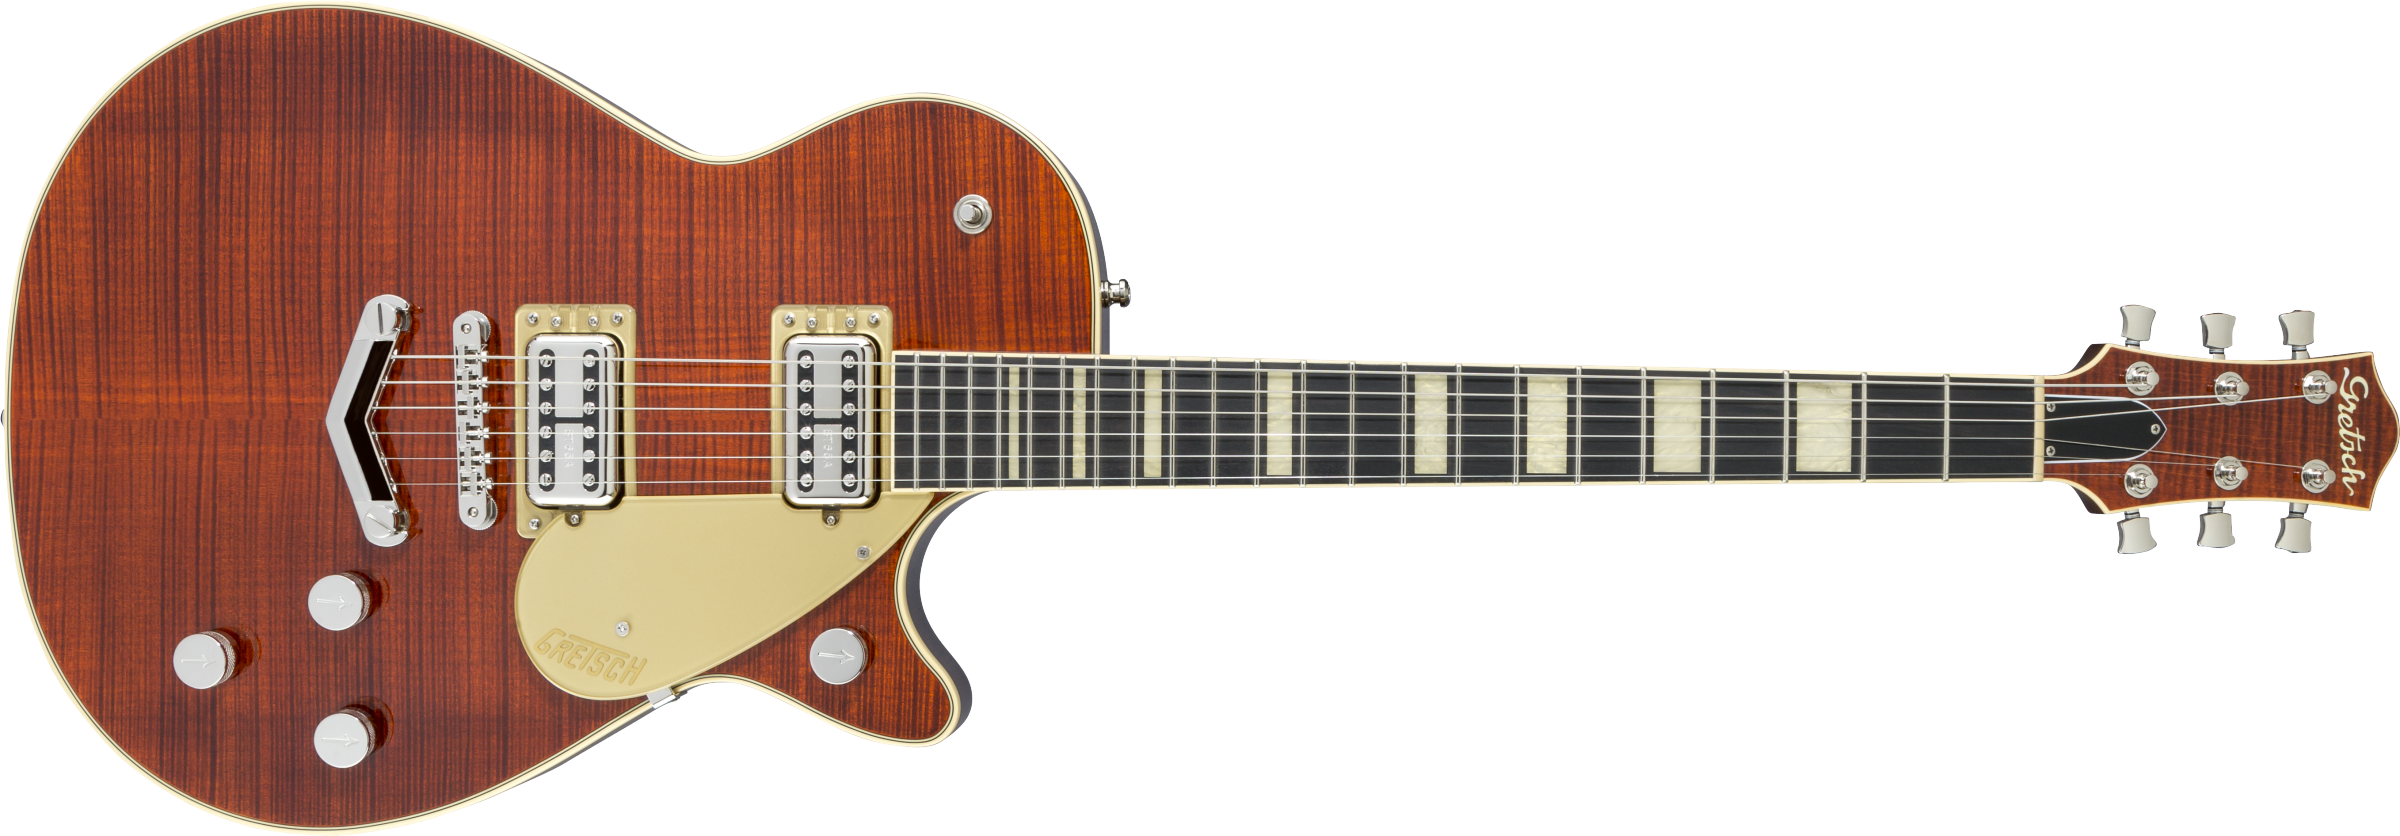 GRETSCH G6228FM Players Edition Jet BT With V-Stoptail, Flame Maple, Ebony Fingerboard, Bourbon Stain